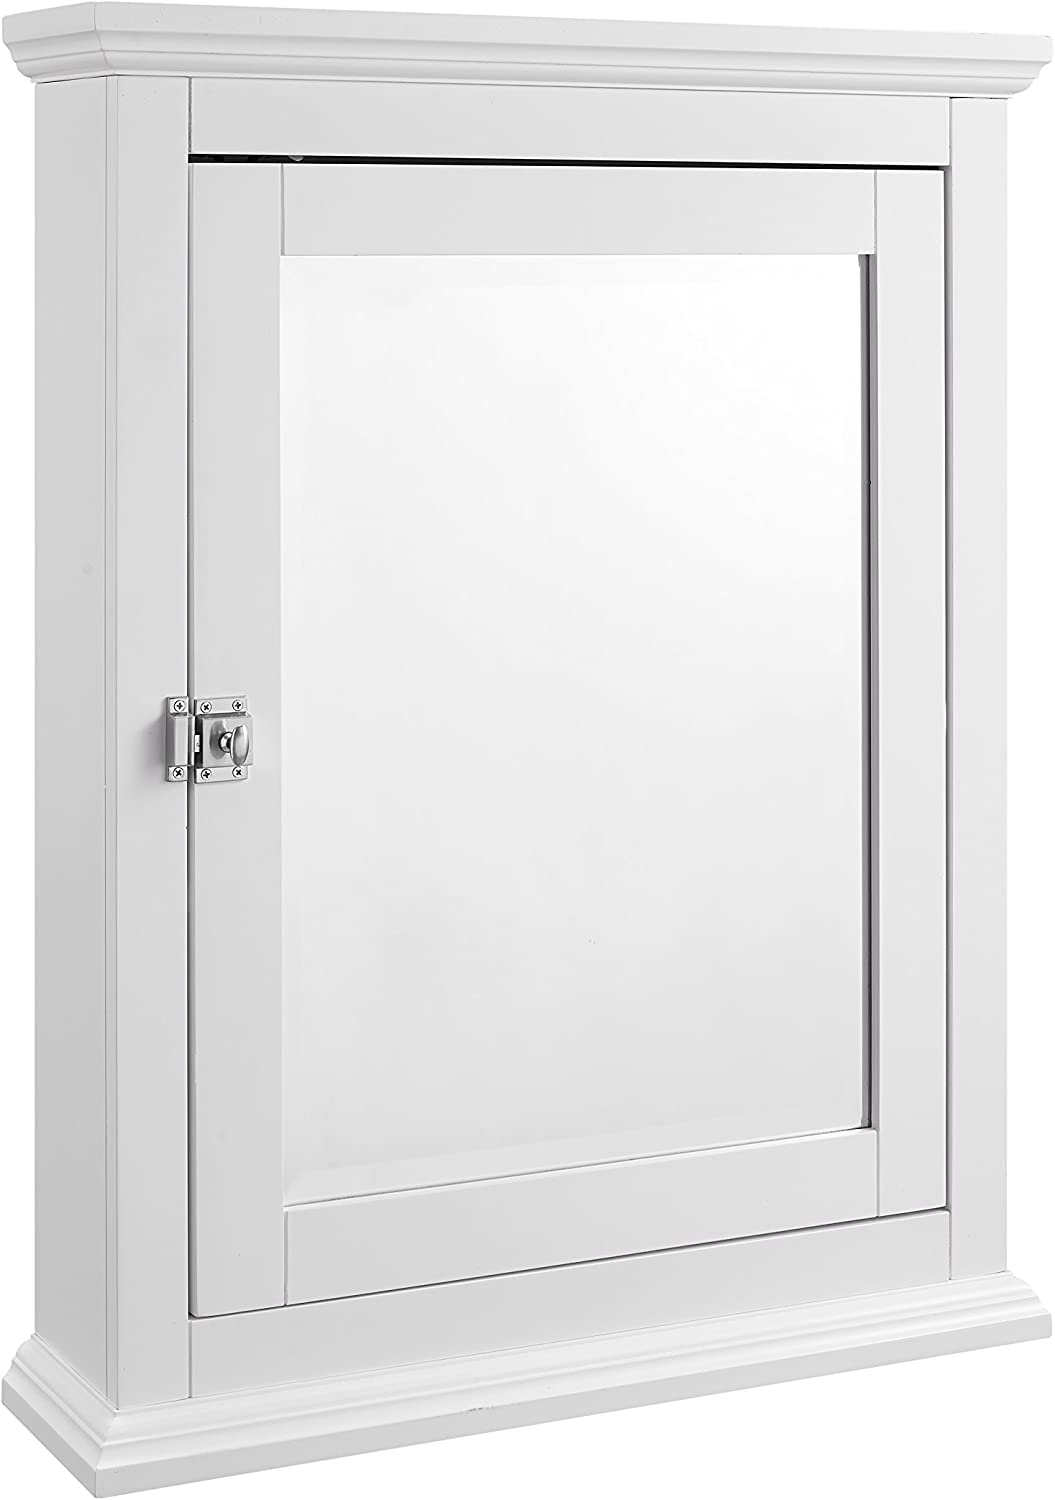 Linon Bathroom Medicine Cabinet Manufacturer direct delivery White Flush with M Crown Minneapolis Mall Molding